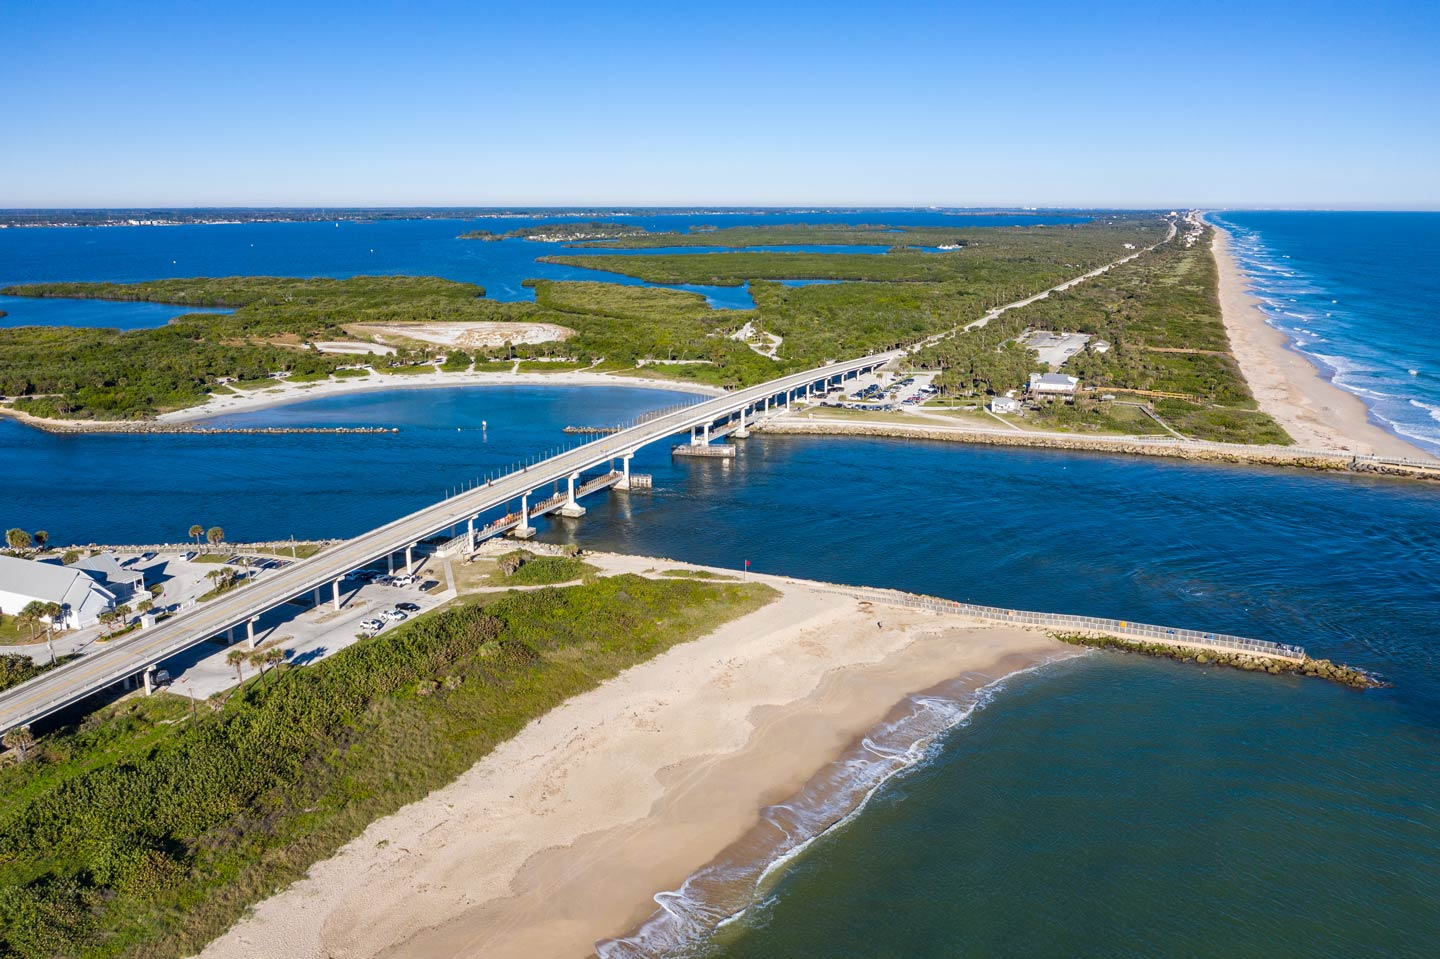 An aerial view showing the Sebastian Inlet and how it divides the Atlantic and Indian River